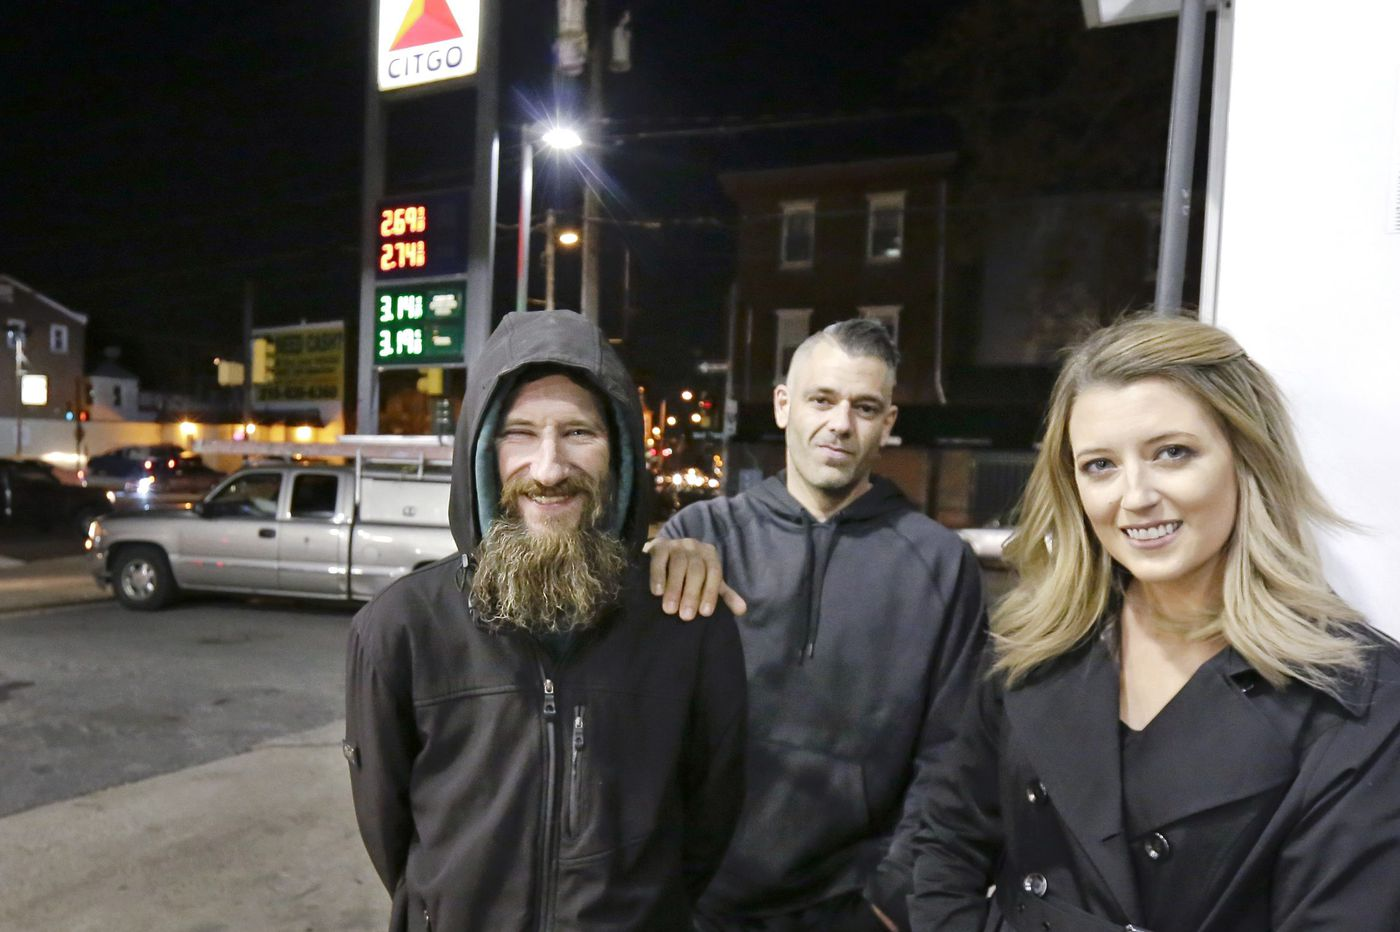 Johnny Bobbitt's story is a reminder that even winning the lottery won't beat stigma | Opinion